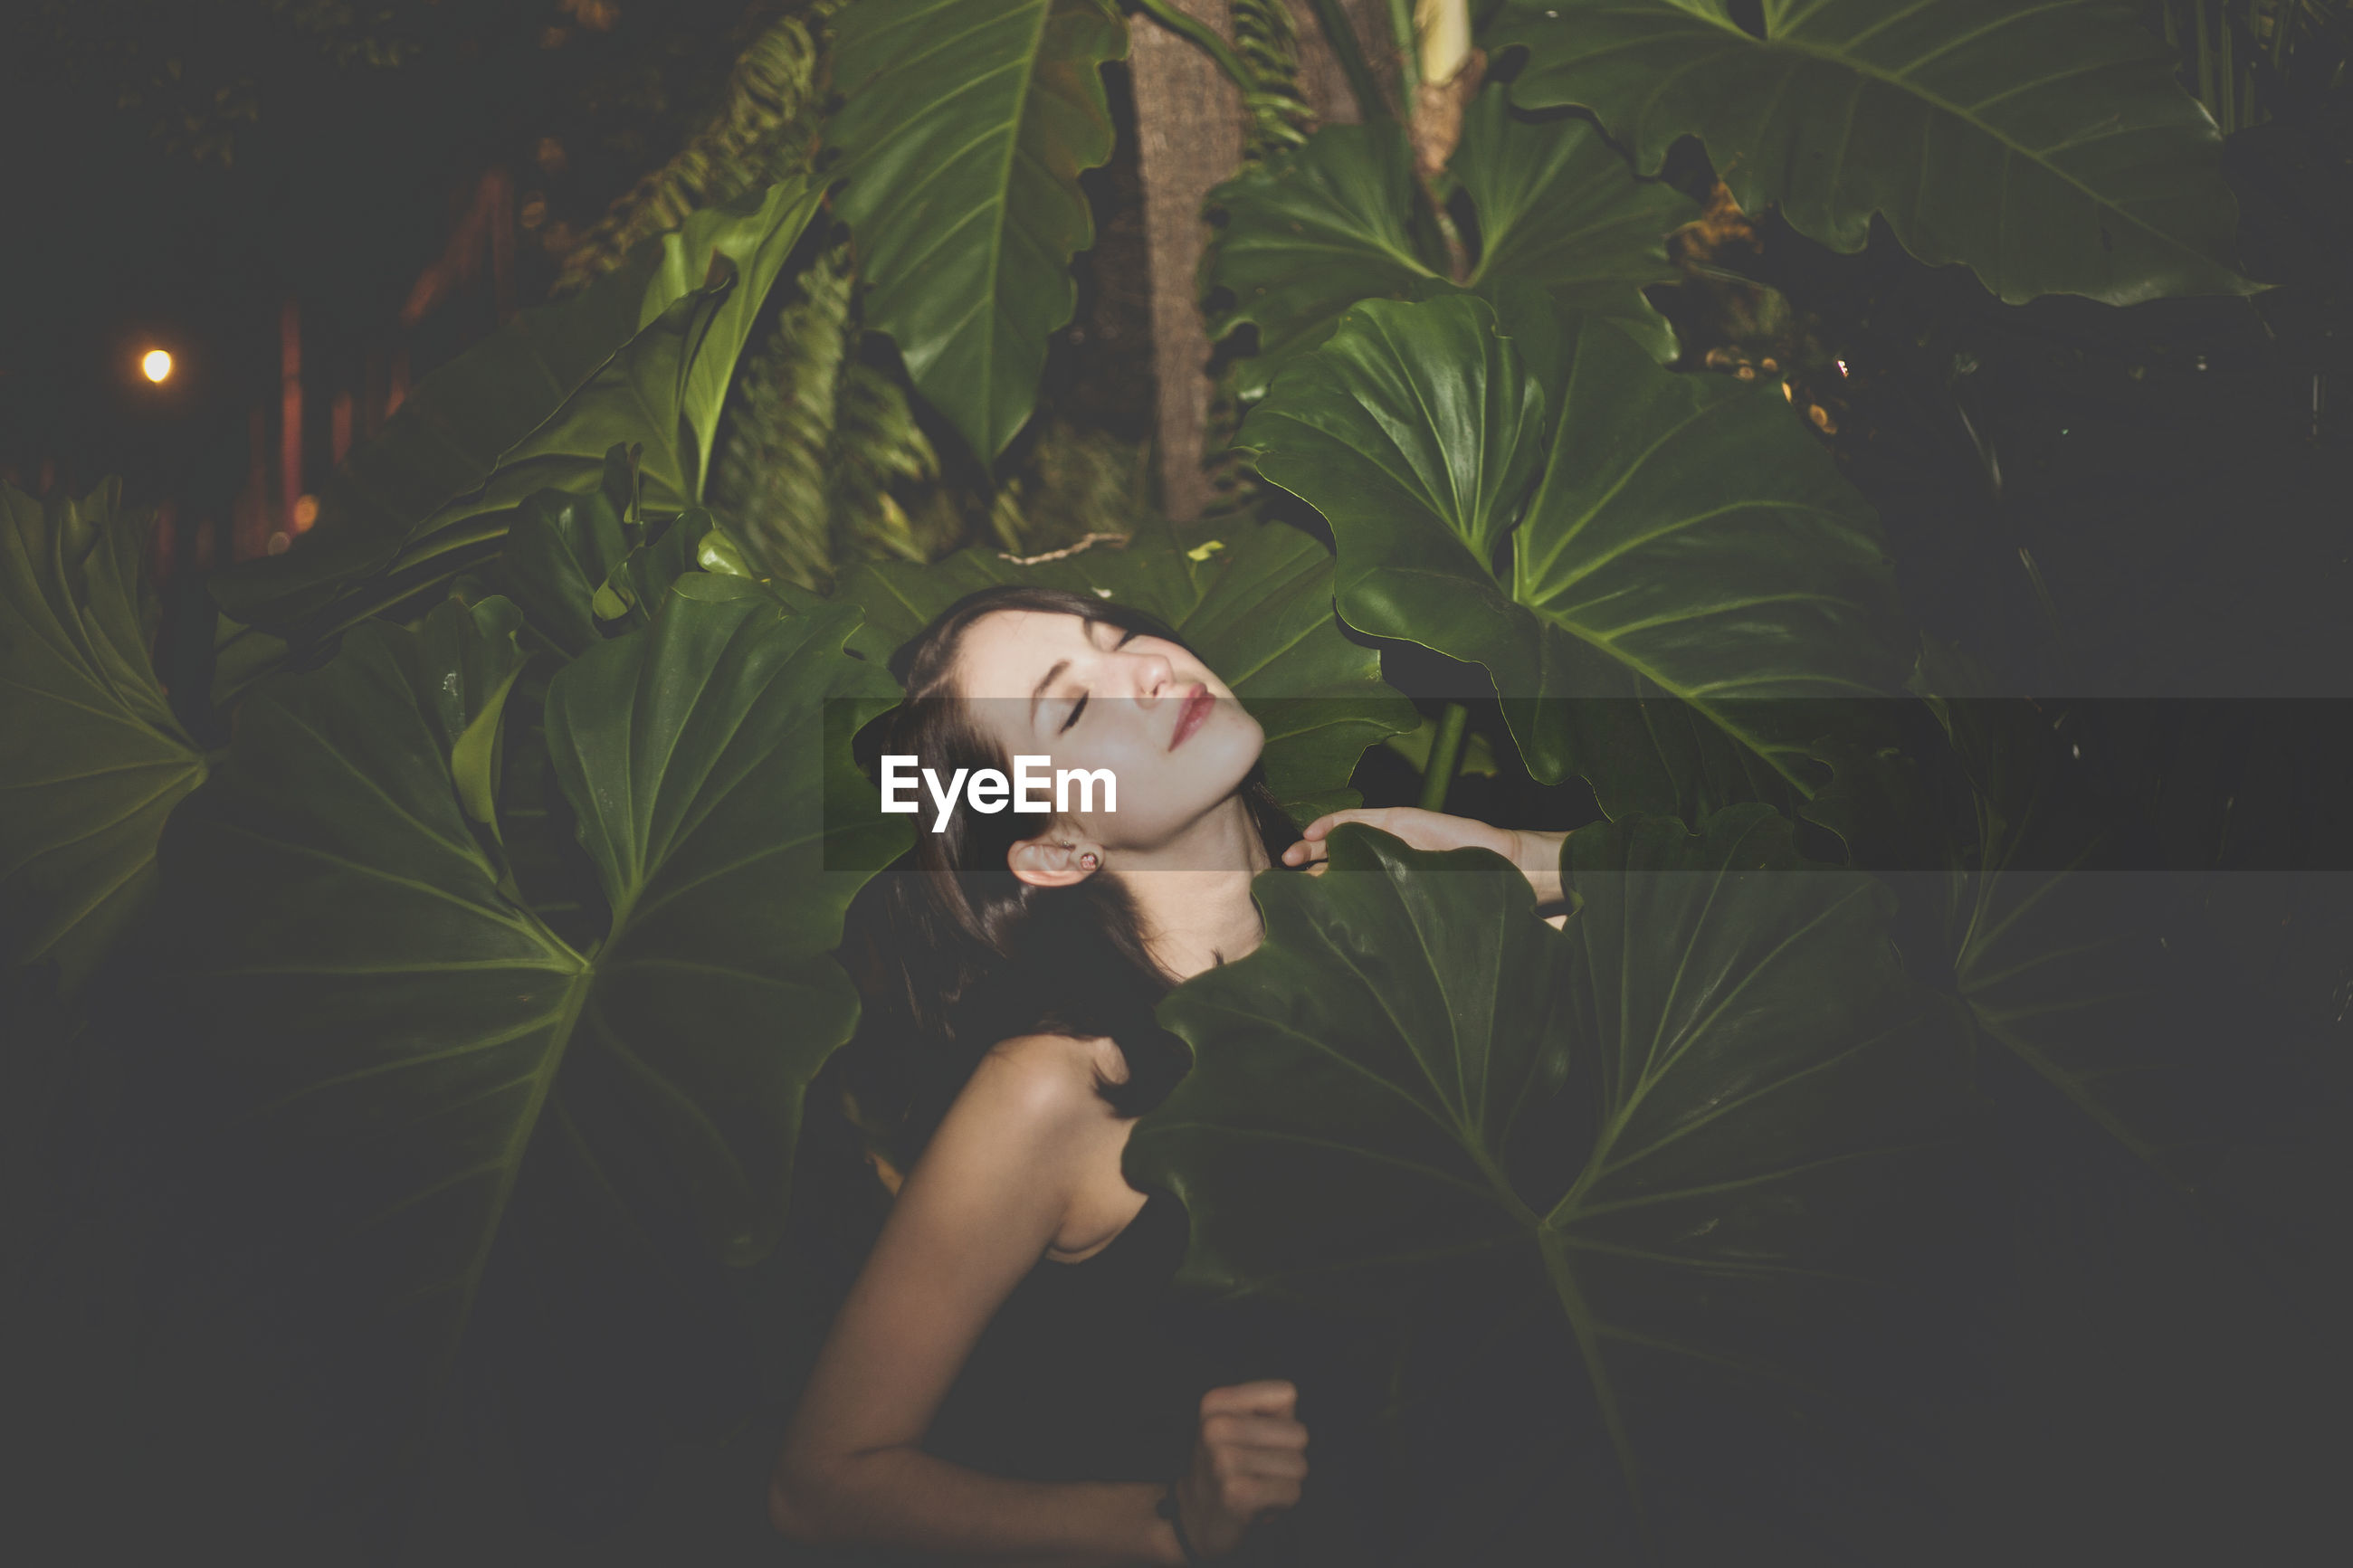 Beautiful young woman with eyes closed standing amidst plants at night